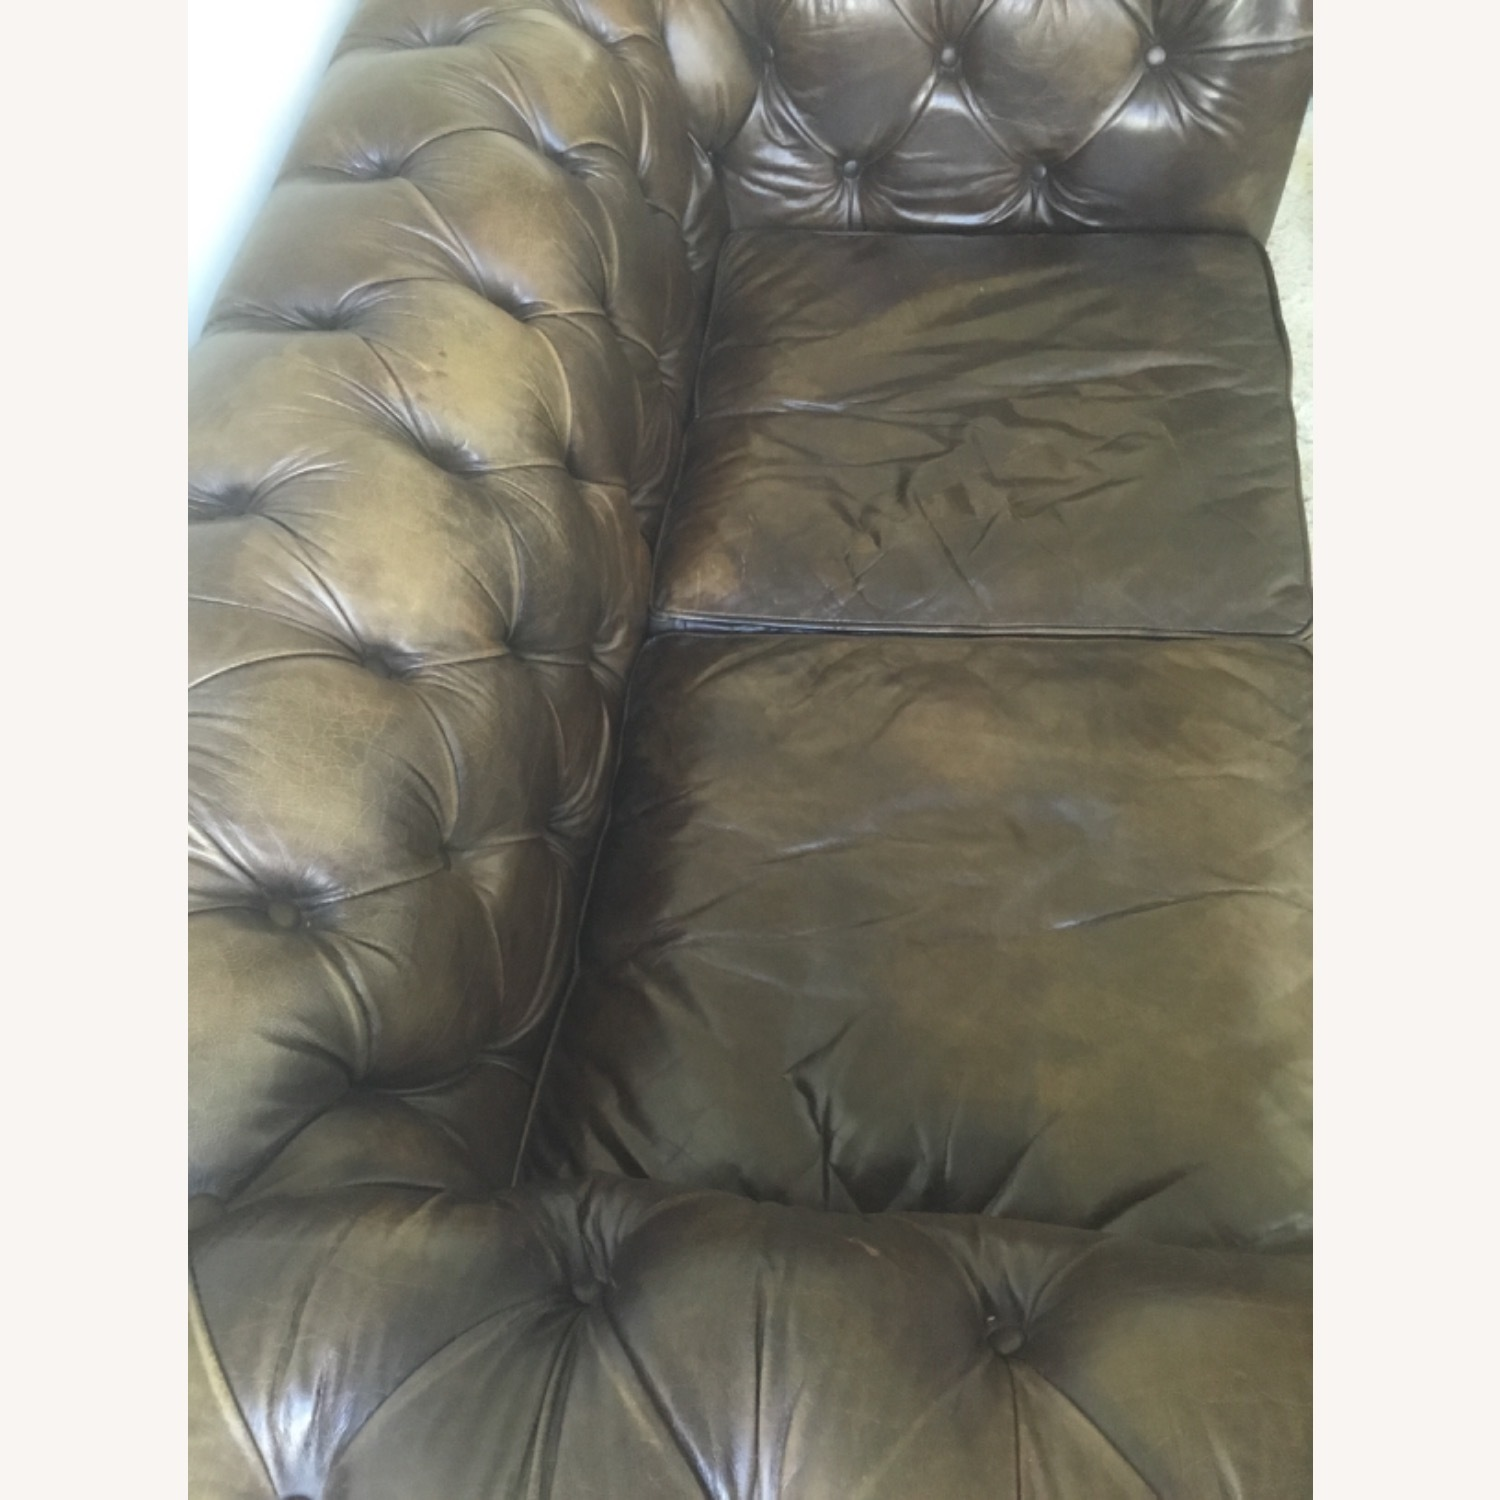 Timothy Outlon Westminster Button Leather Couch - image-6